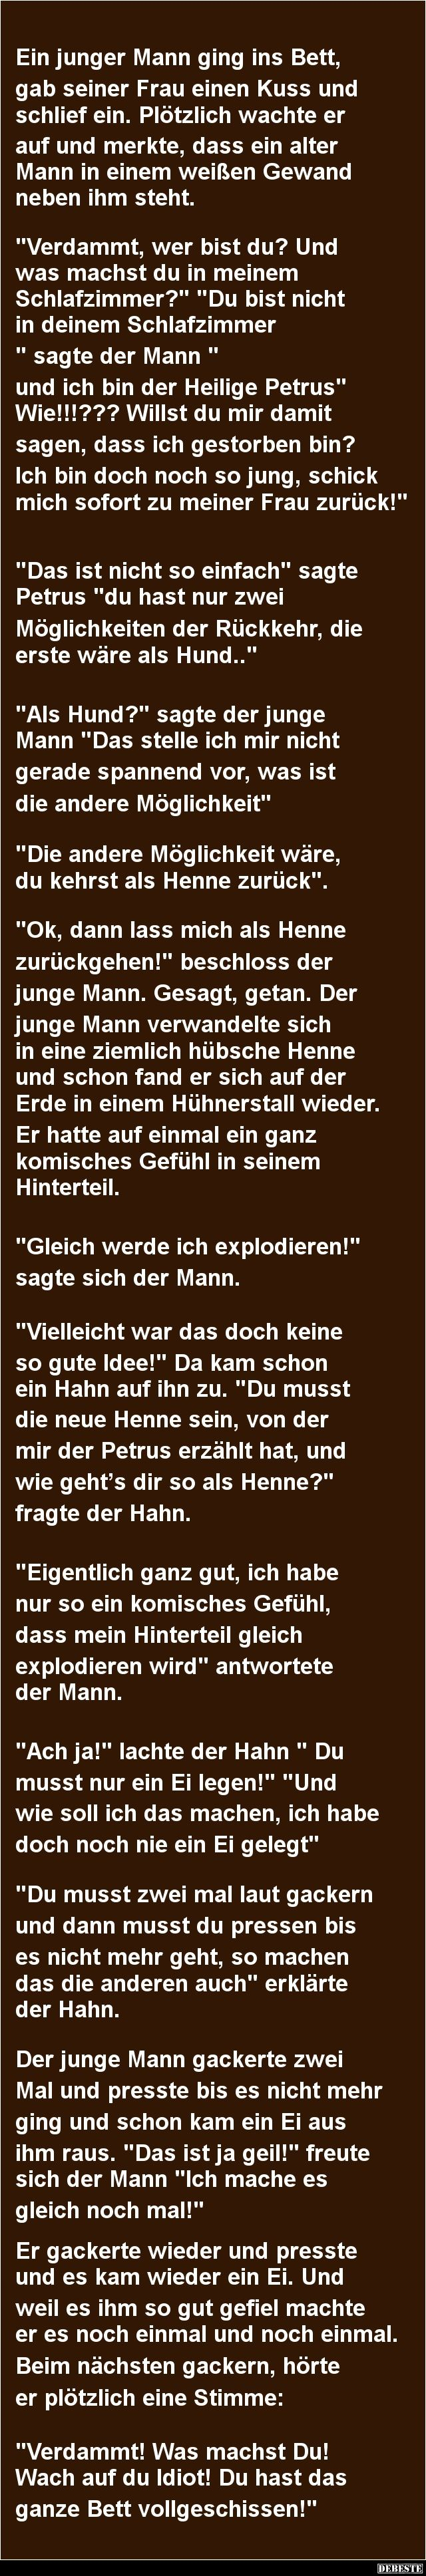 17 best images about sprüche on pinterest | facebook, manche and